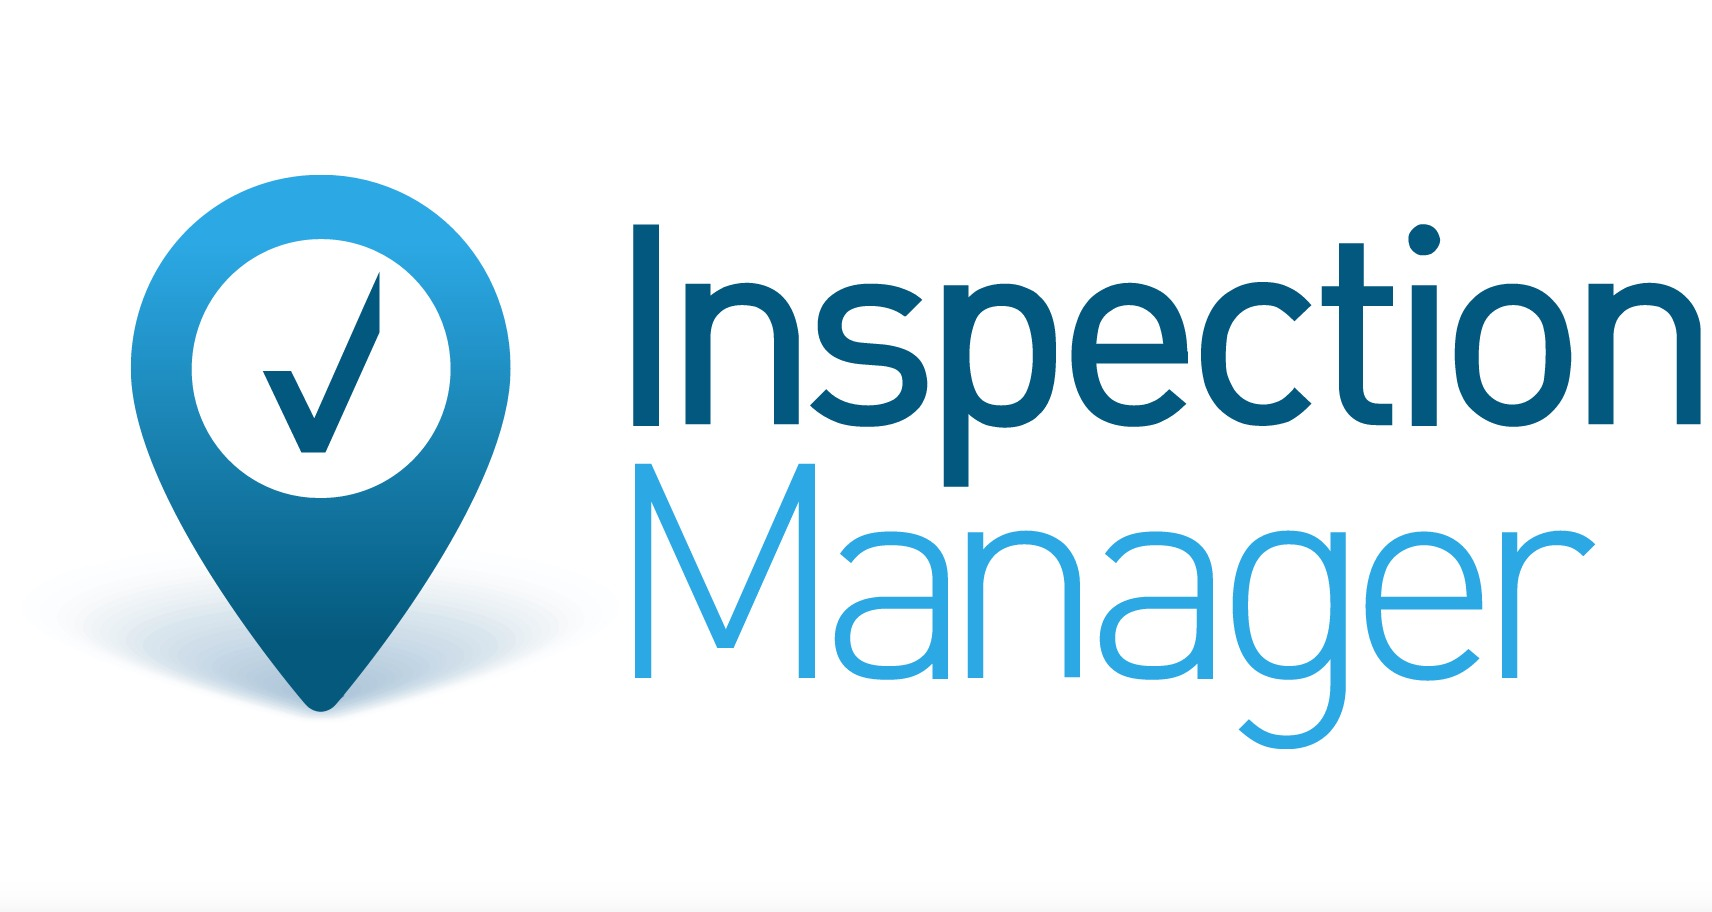 Inspection Manager